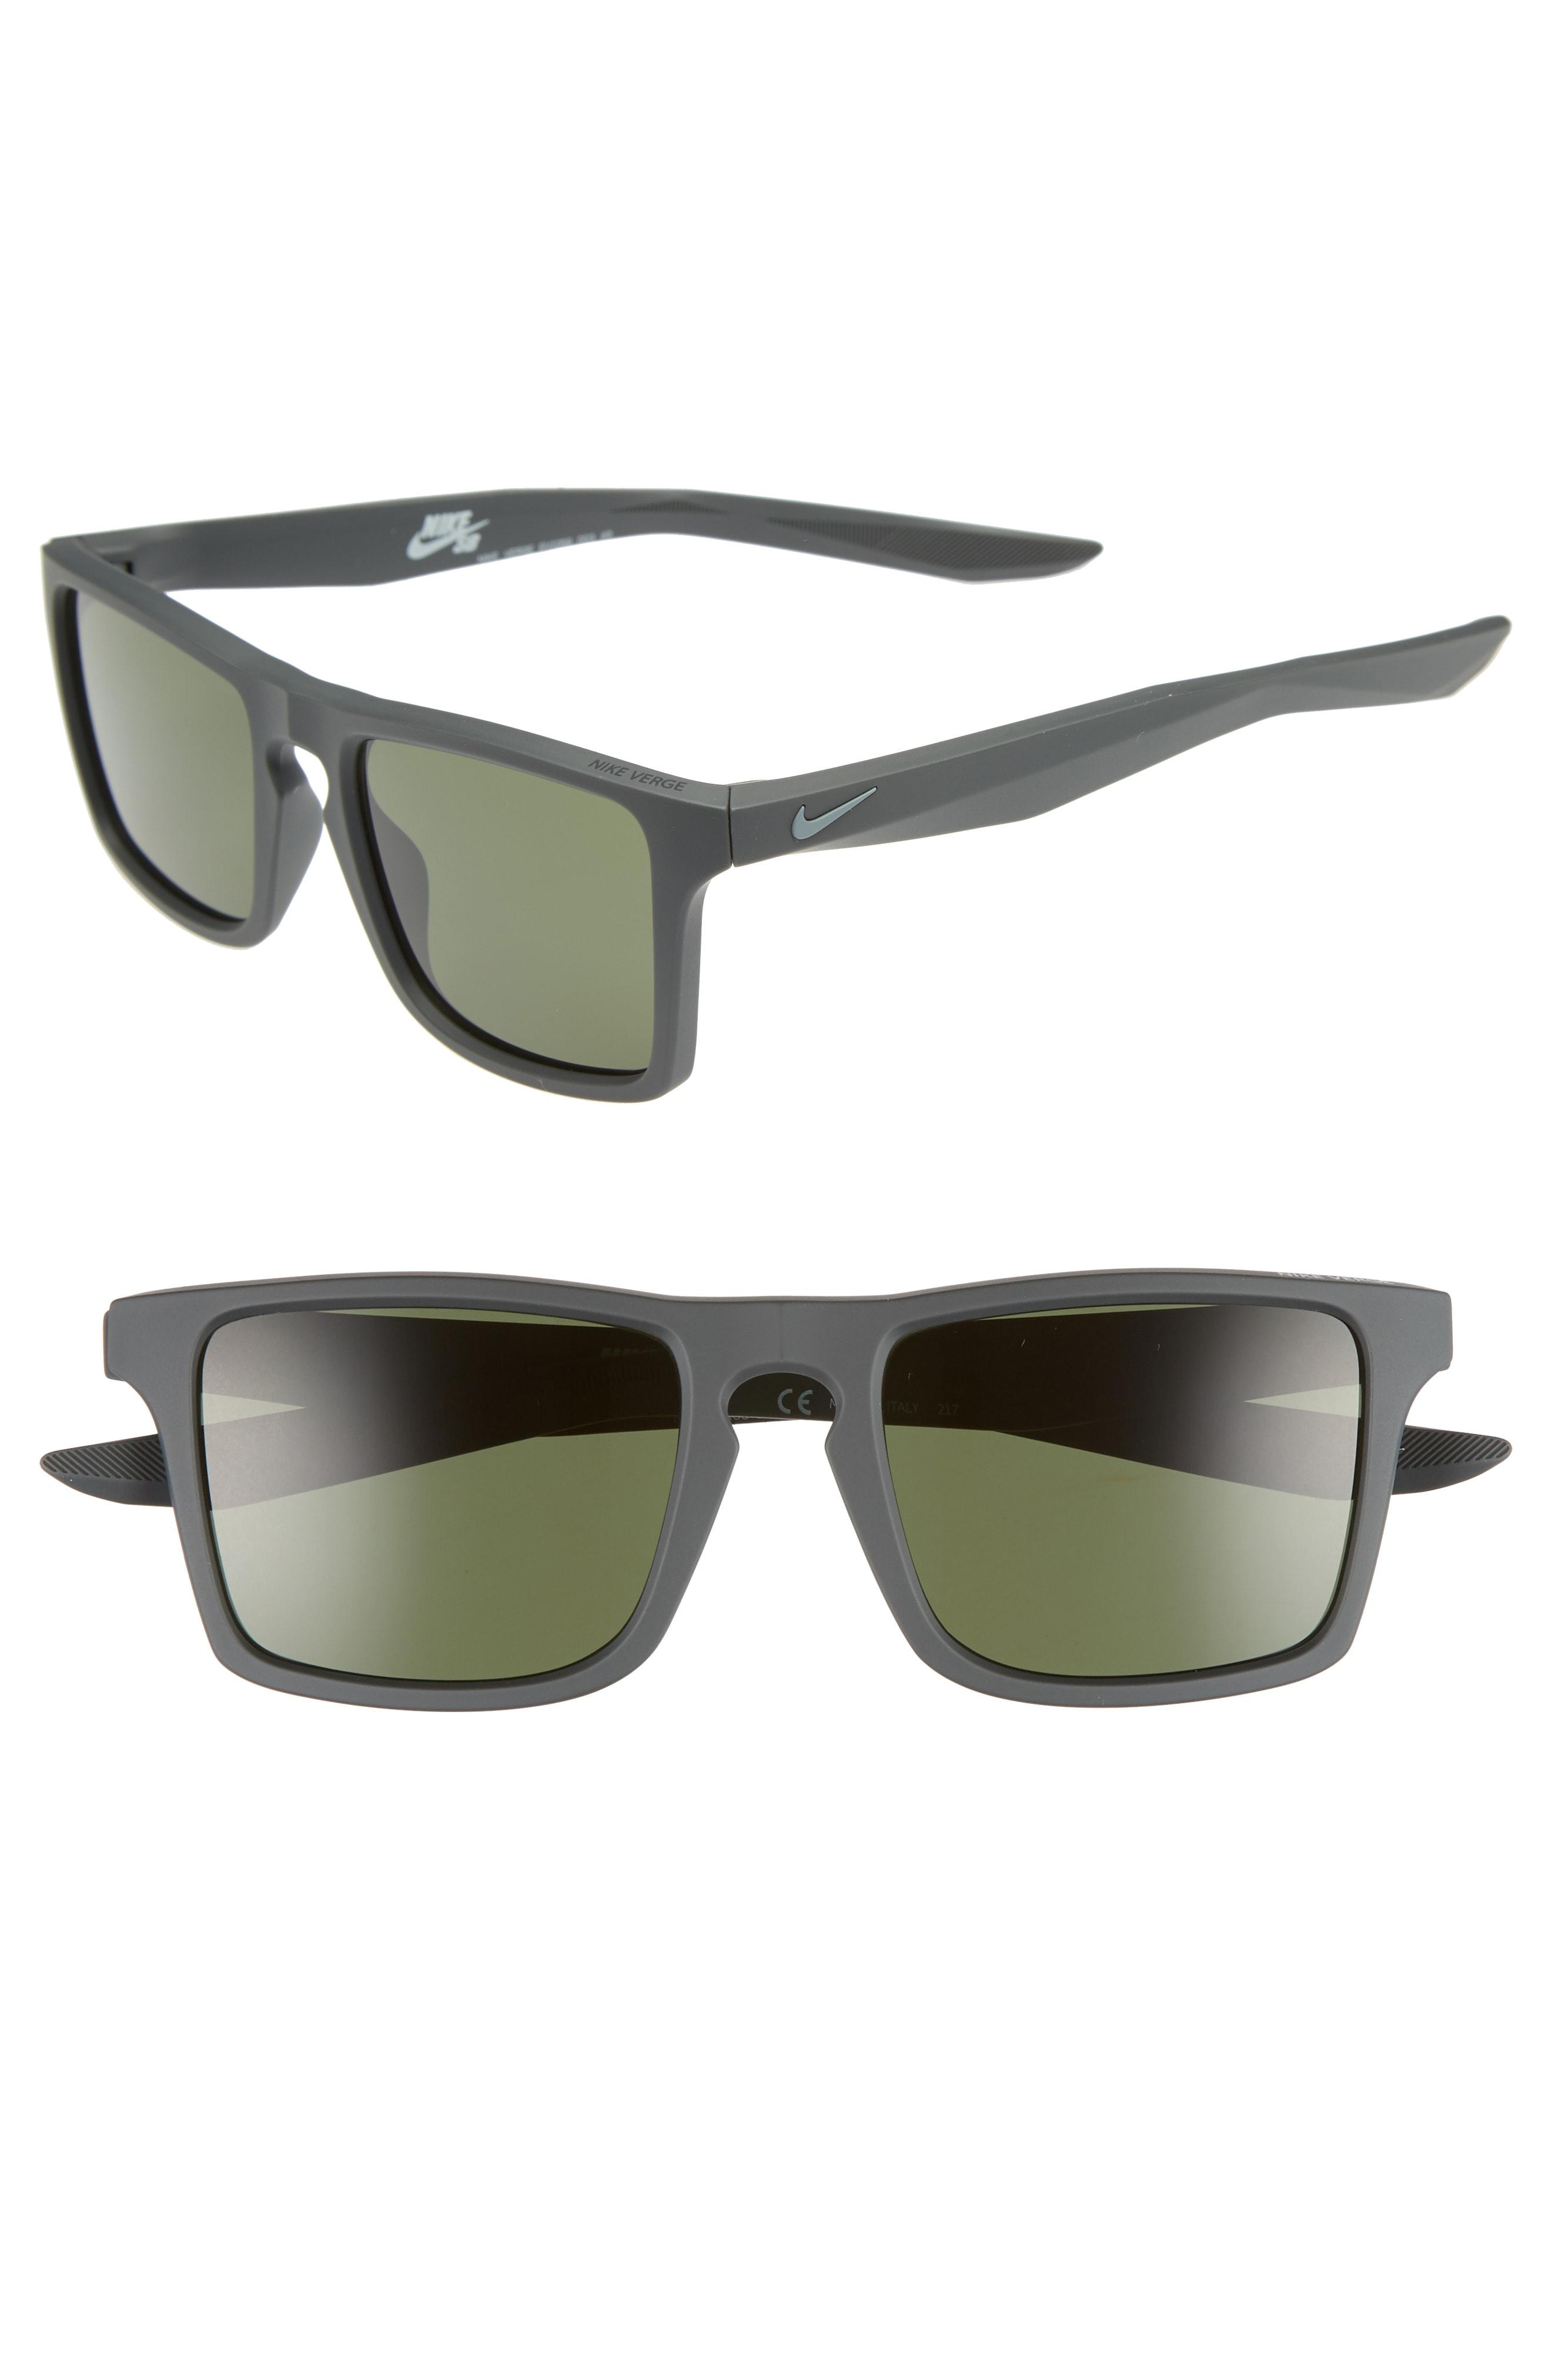 50ff77bb23 Lyst - Nike Verge 52mm Sunglasses - Anthracite  Cool Grey  Green in ...